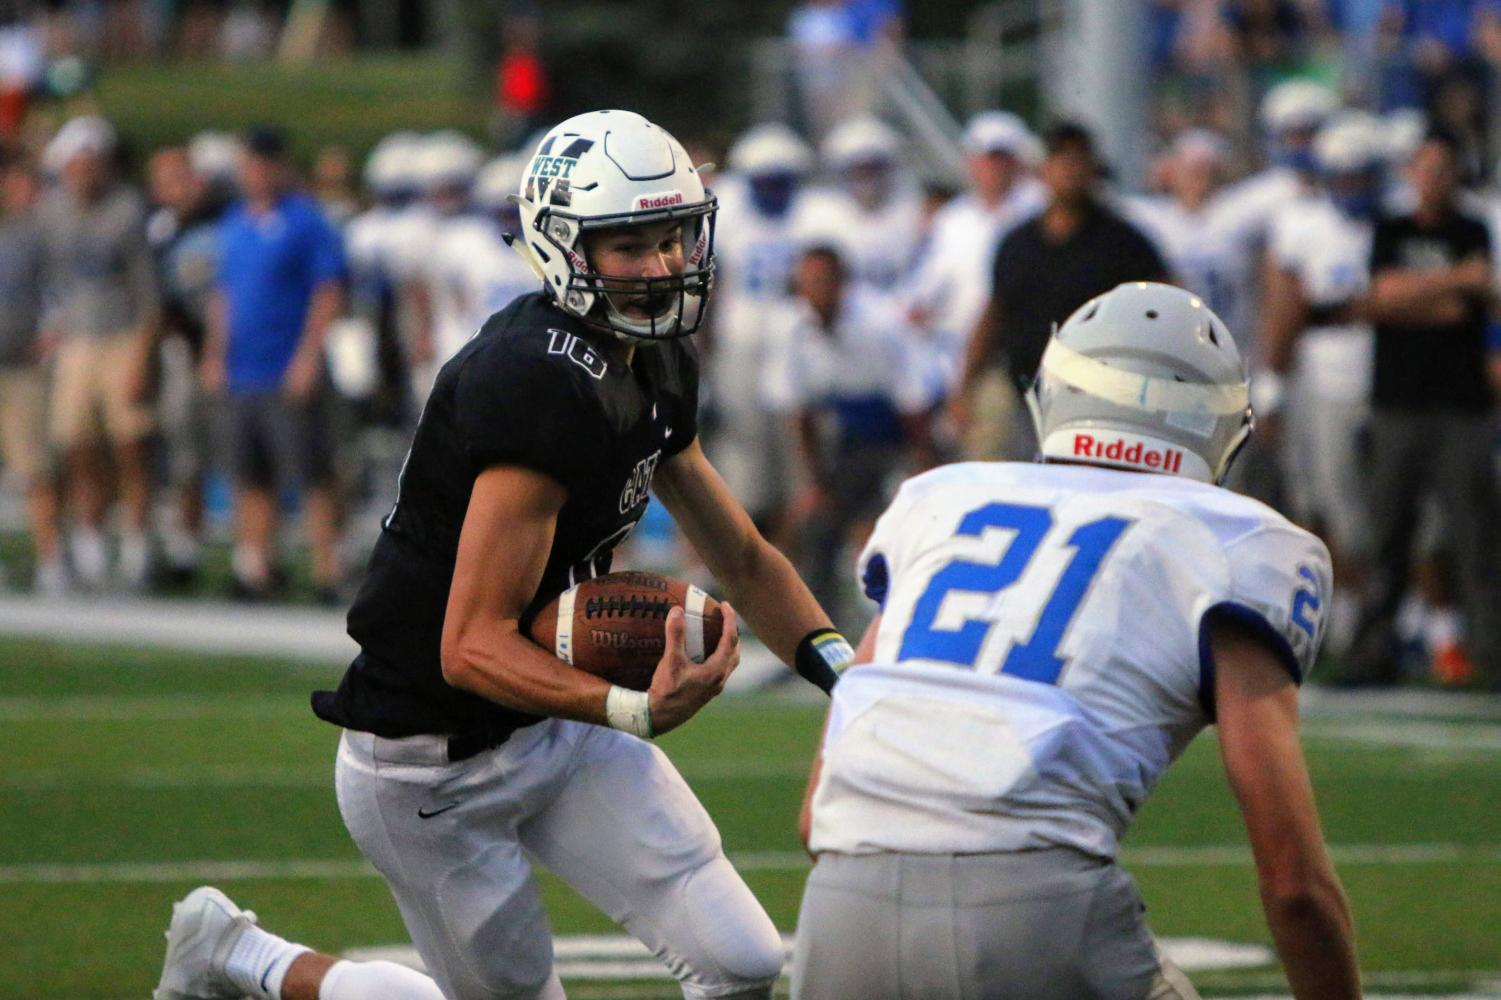 Senior quaterback Tristan Gomes trying to outrun a defender to score the touchdown. Gomes had four rushing touchdowns that night and was the only person on the team to score touchdowns Friday night.